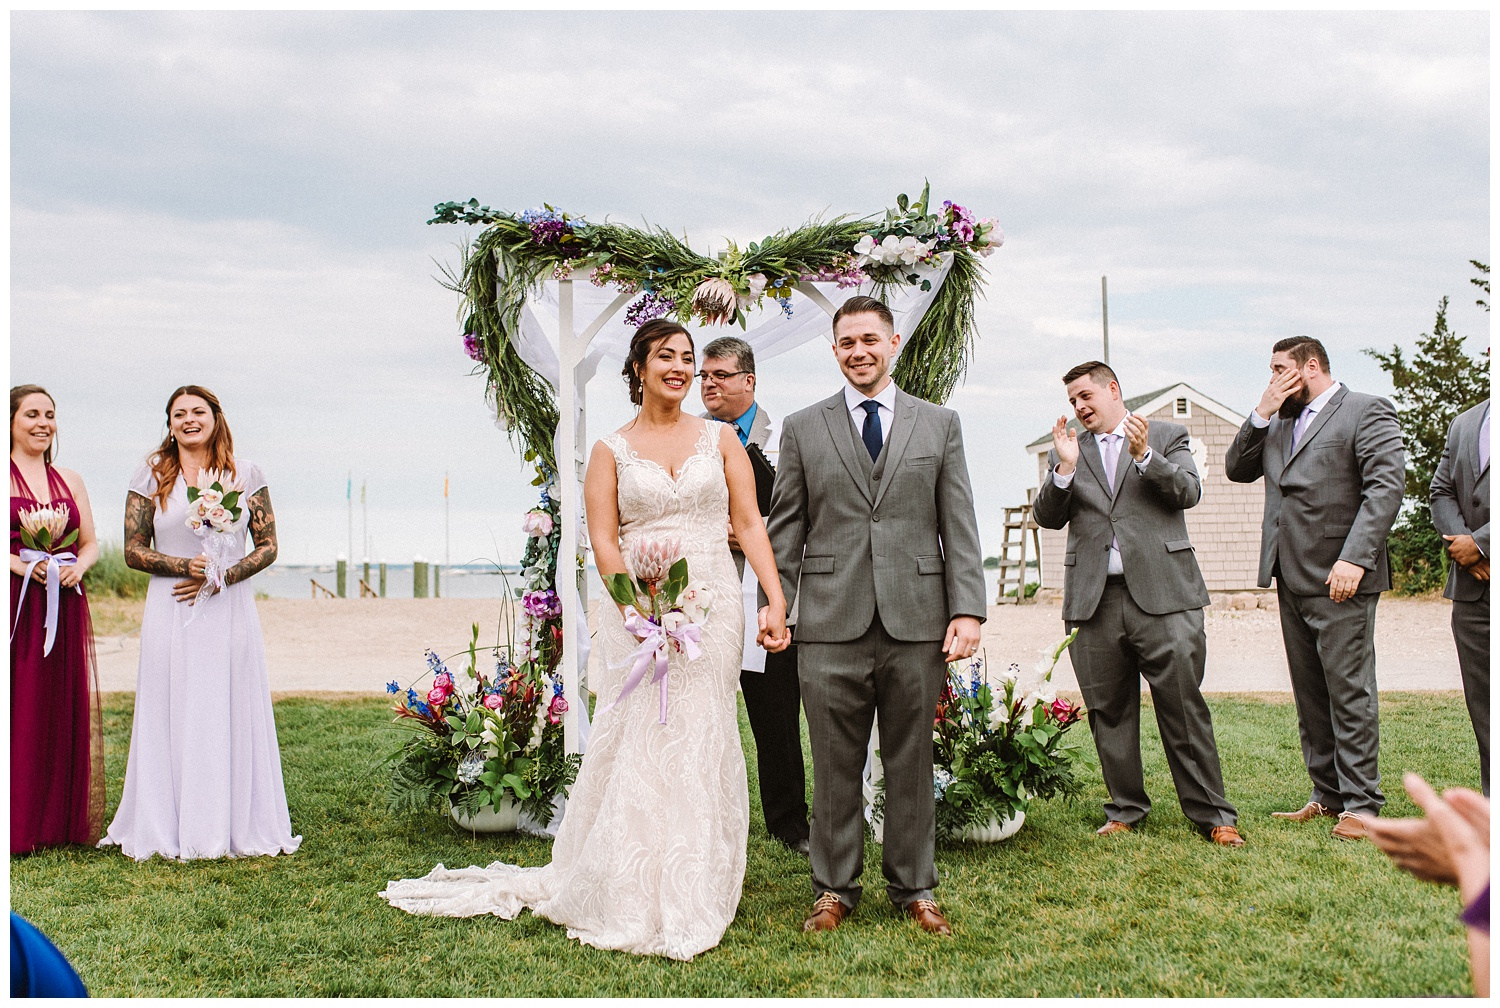 Shining Tides Wedding Mattapoisett Wedding - Photographer107.jpg